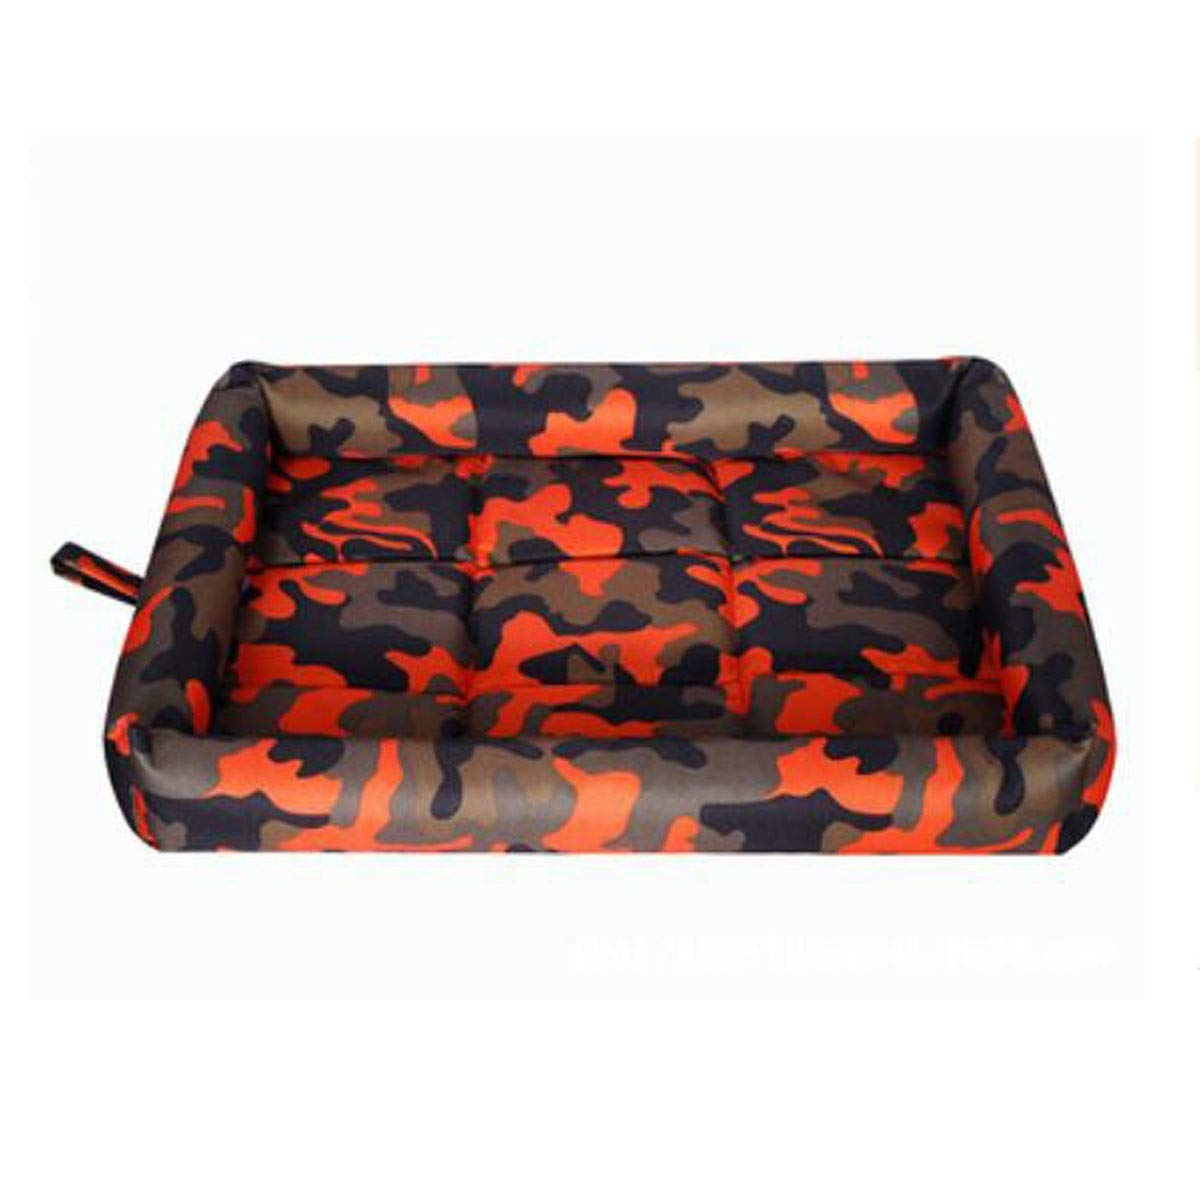 Camouflage orange L Dog Bed, Spring Large and Medium Dog Orthopedic Sleeping Bed, Can Be Placed On The Floor Car Dog Cage, Camouflage bluee, Camouflage orange, Camouflage Red XXL (color   Camouflage bluee, Size   XL)